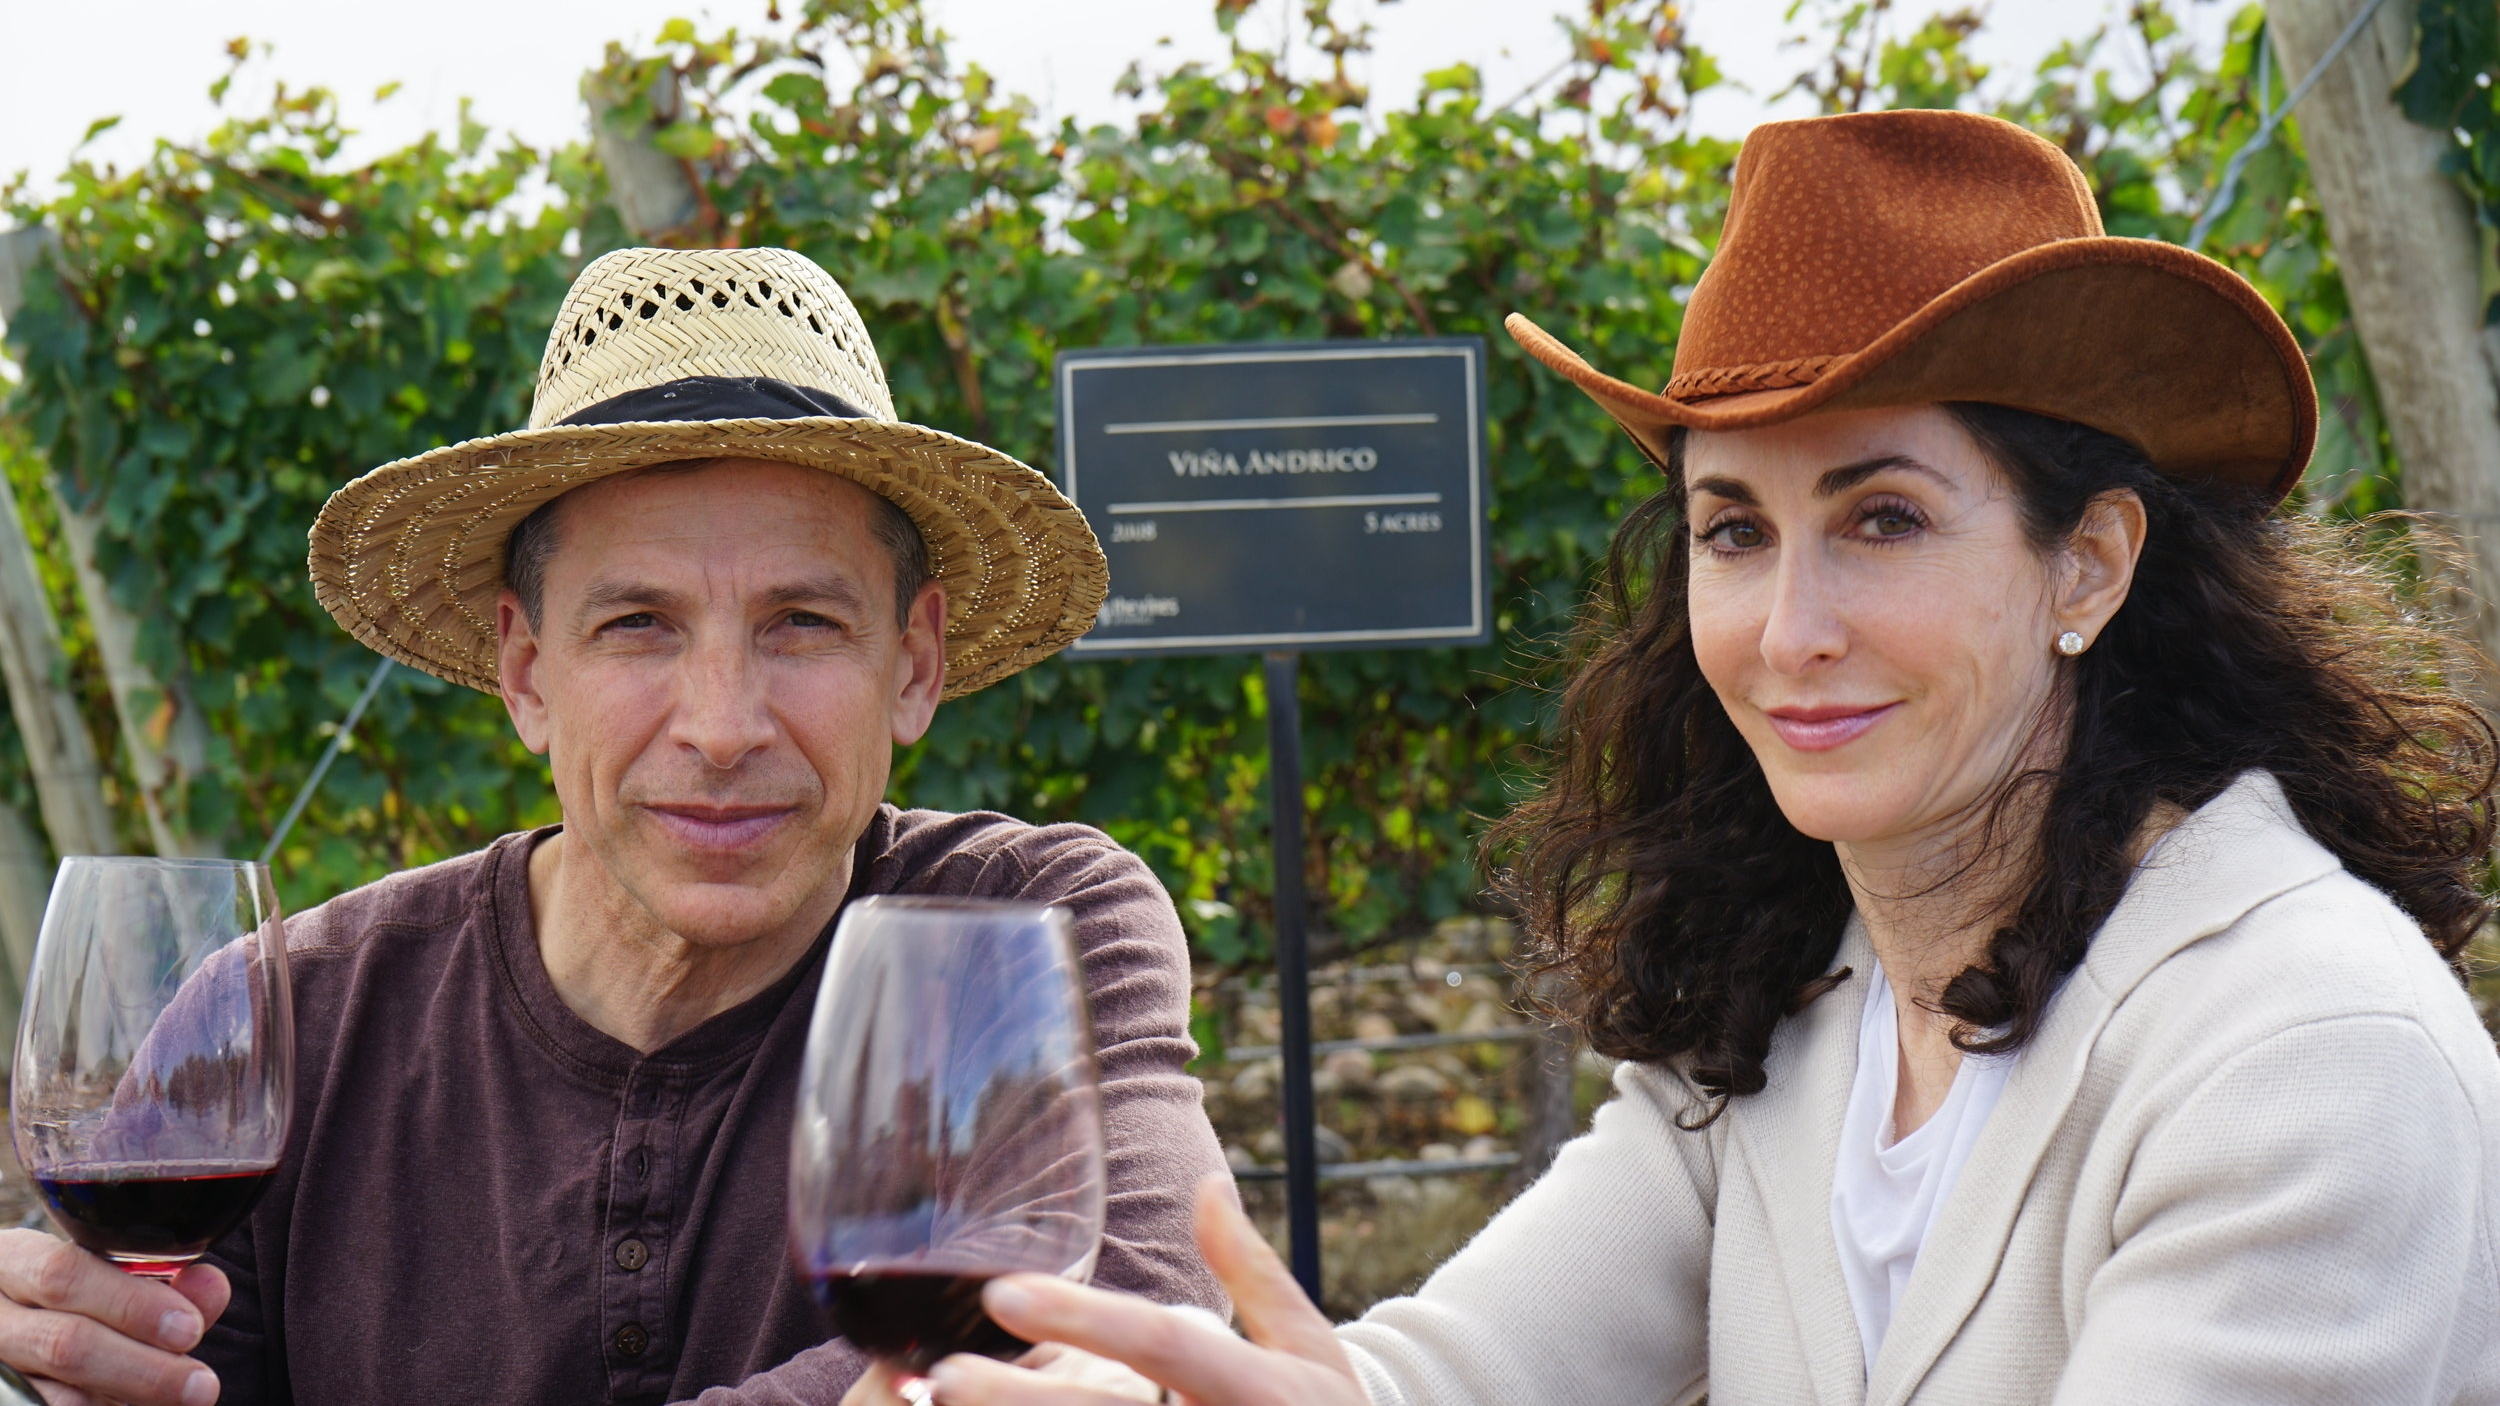 Proprietors Richard and Andrea Saperstein tasting the wine in the vineyard.  Vina Andrico vineyard in Mendoza, Argentina.